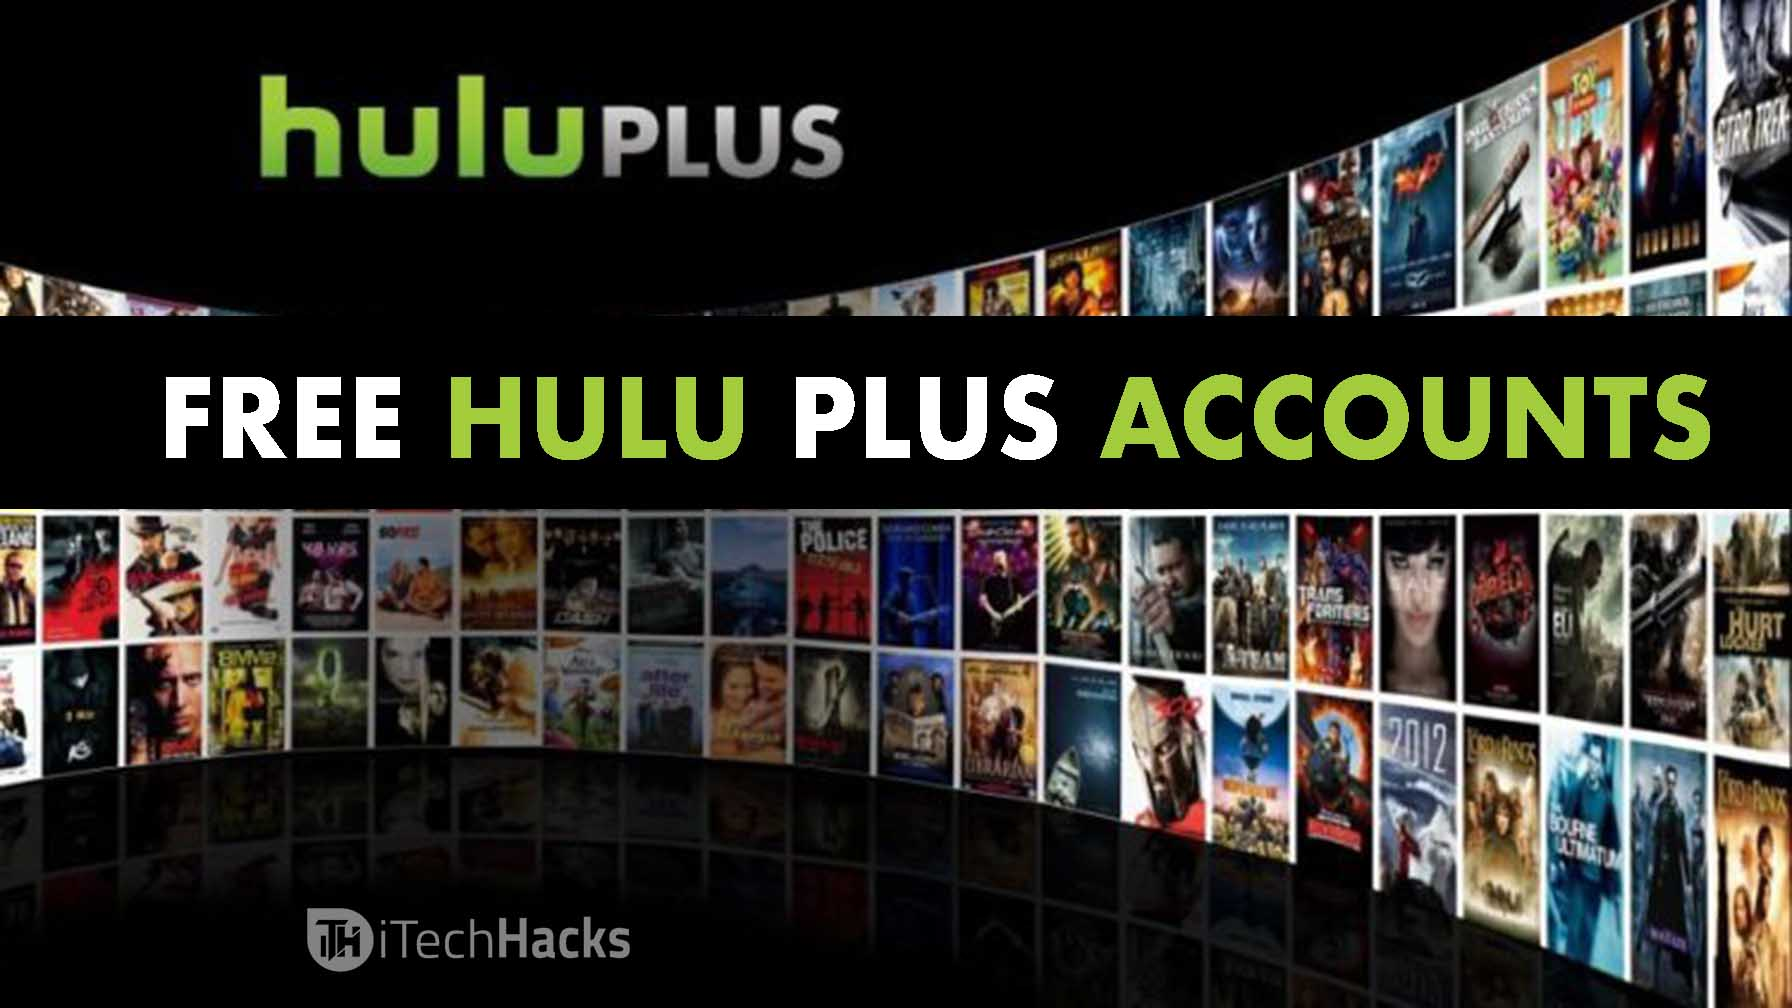 20+ Working Hulu Accounts and Passwords (2021) - Download 20+ Working Hulu Accounts and Passwords (2021) for FREE - Free Cheats for Games